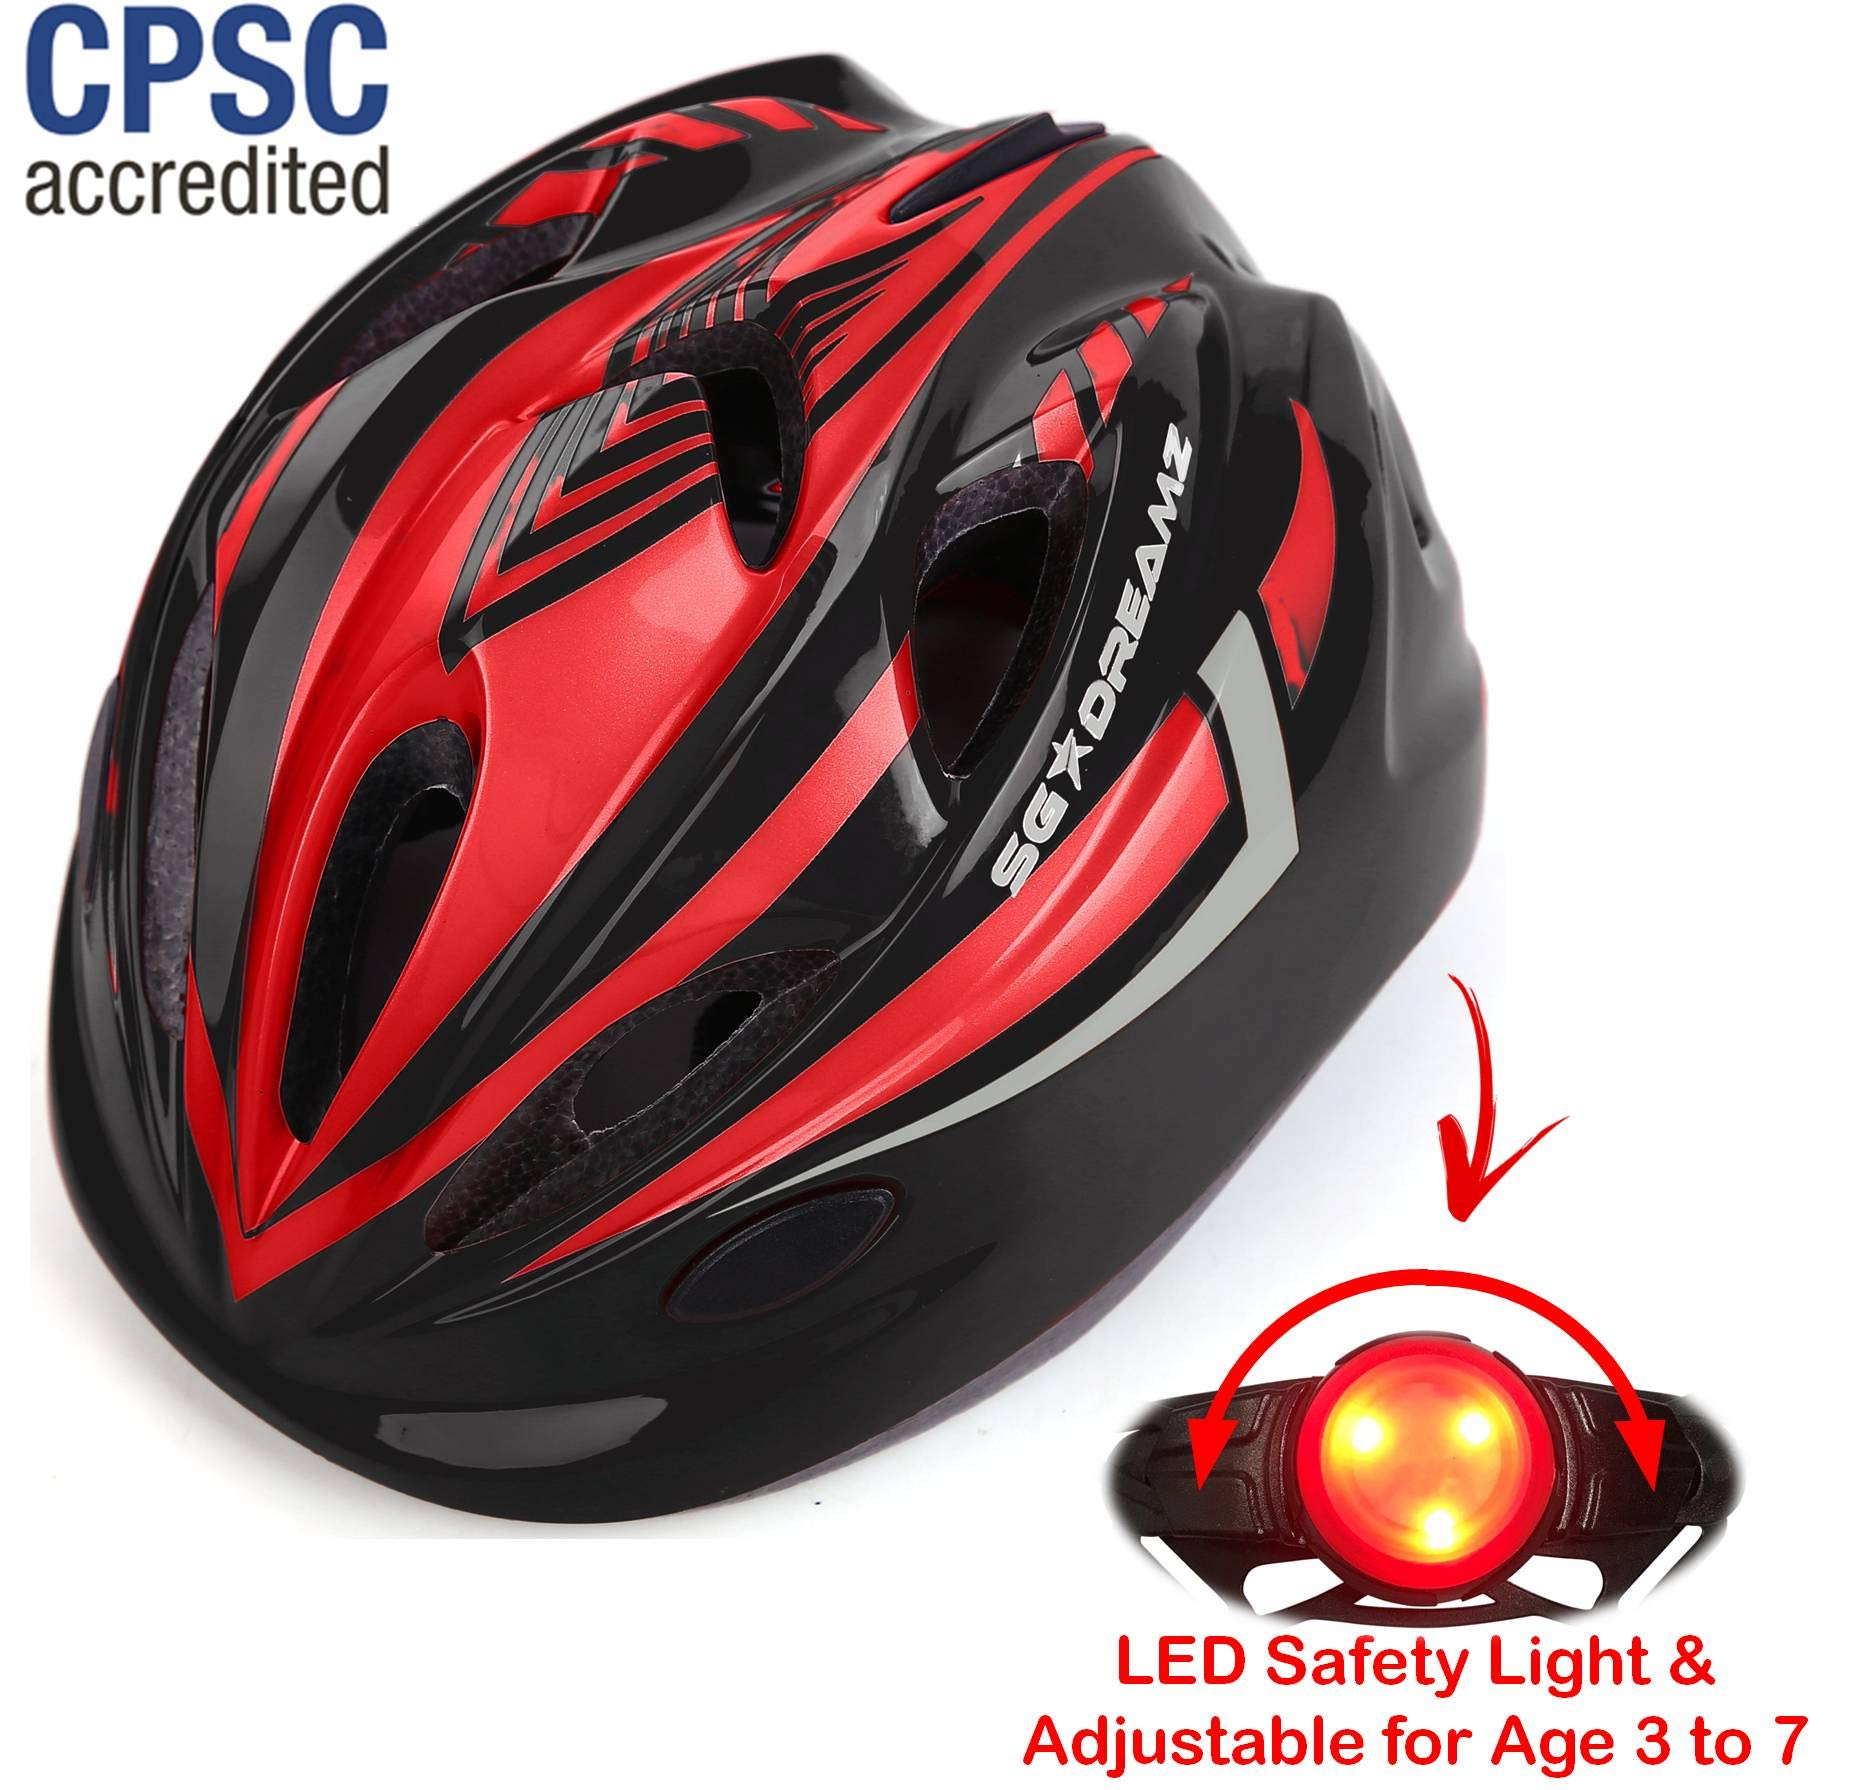 KIDS Helmet - Adjustable from Toddler to Youth Size, Ages 3 To 7 - Durable Kid Bicycle Helmets with Fun Racing Design Boys and Girls will LOVE - CSPC Certified for Safety (K12-1LightBlackRed)